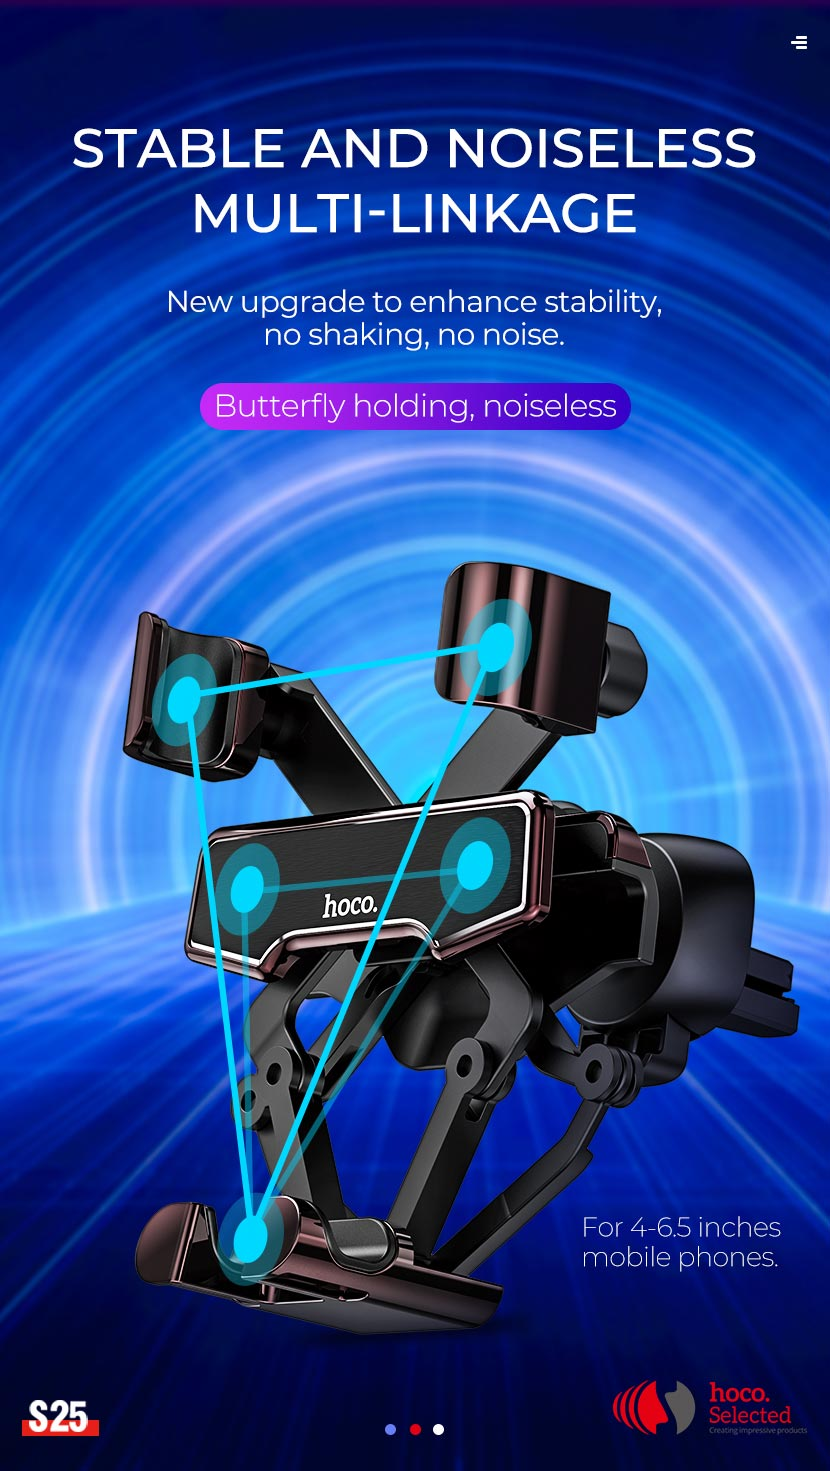 hoco selected news s25 guide gravity linkage car holder stable en